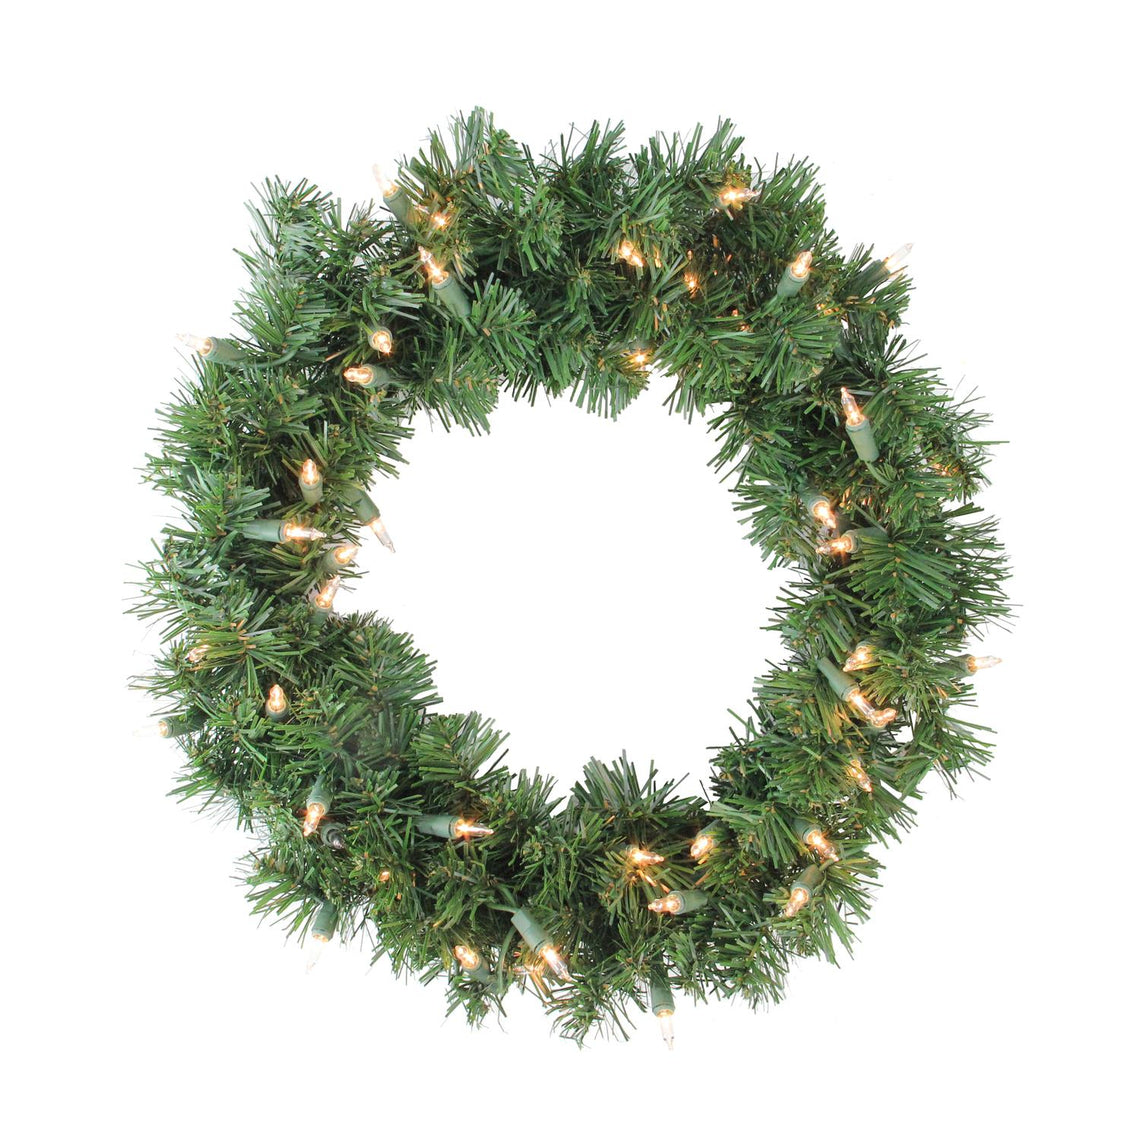 Deluxe Windsor Pine Artificial Christmas Wreath - 16-Inch  Clear Lights